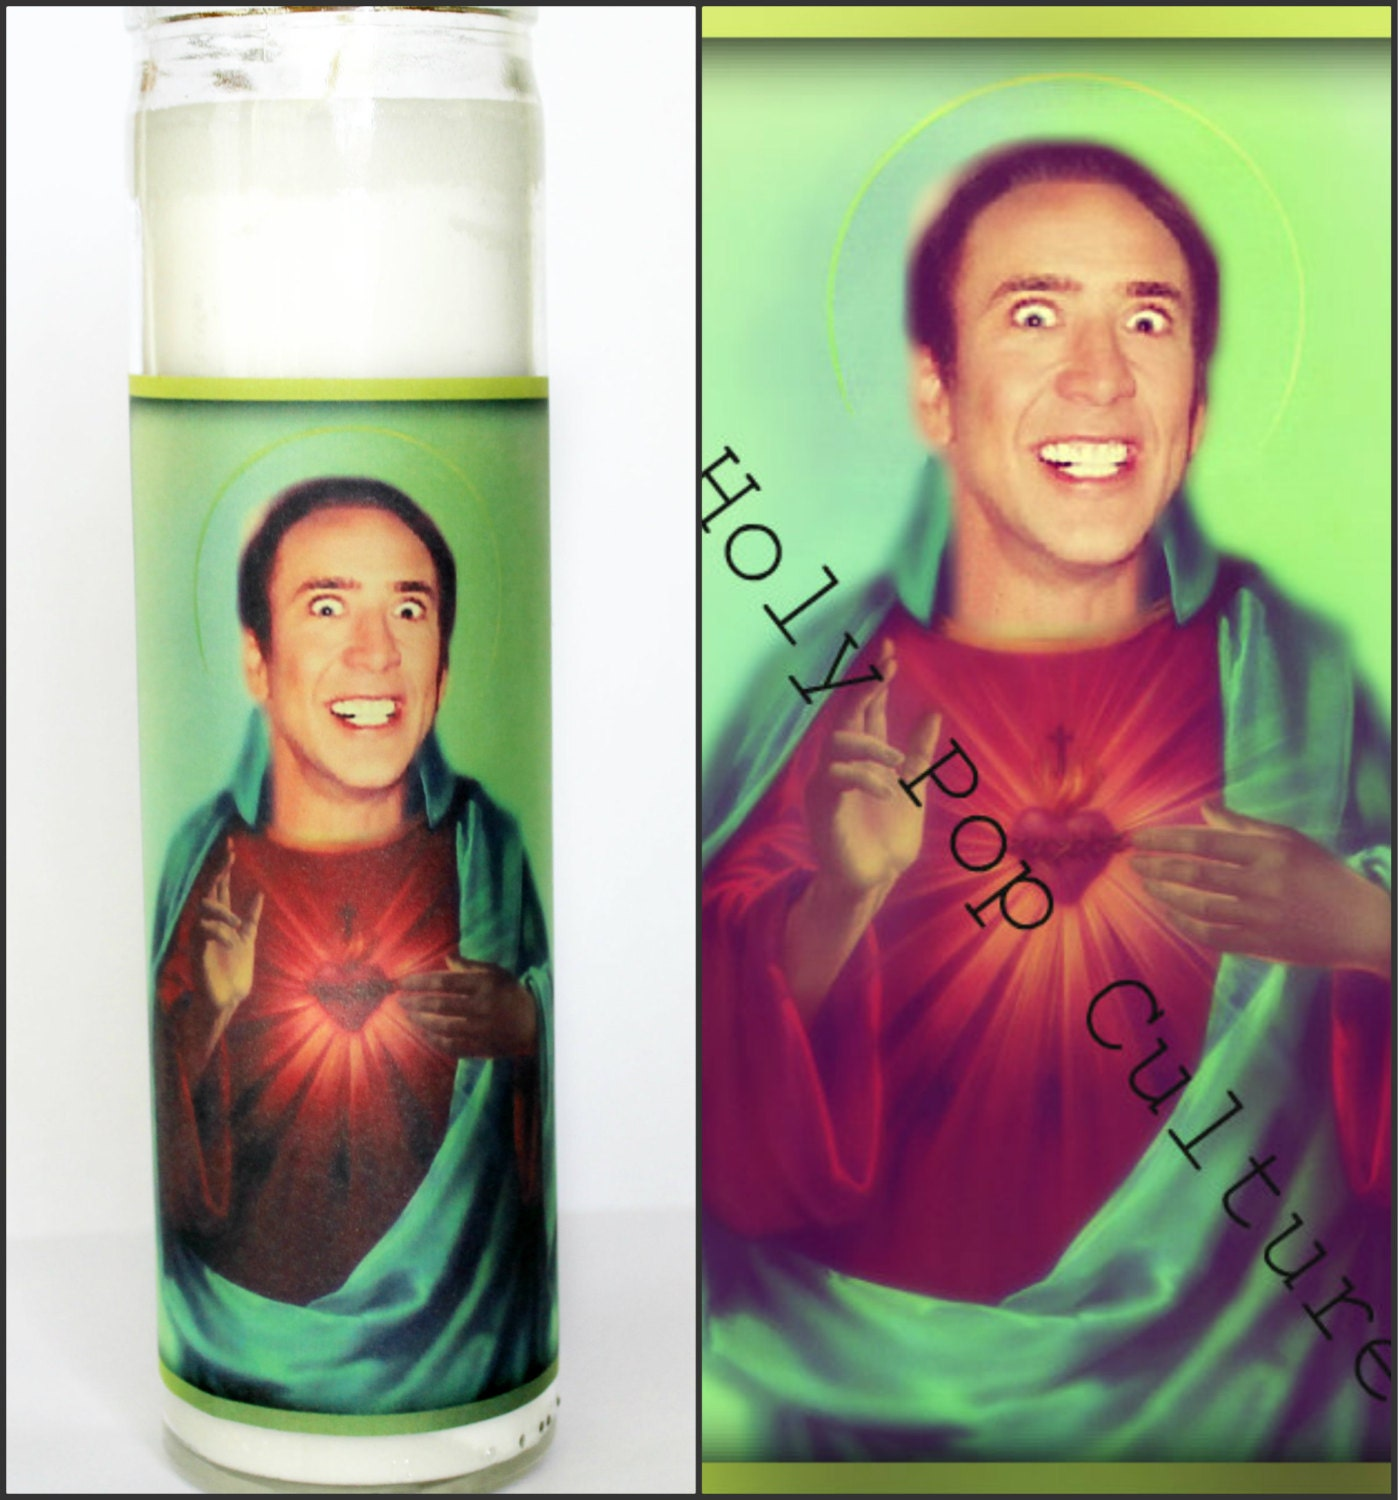 Crazy Saint Nicolas Prayer Candle Nic Cage Candle